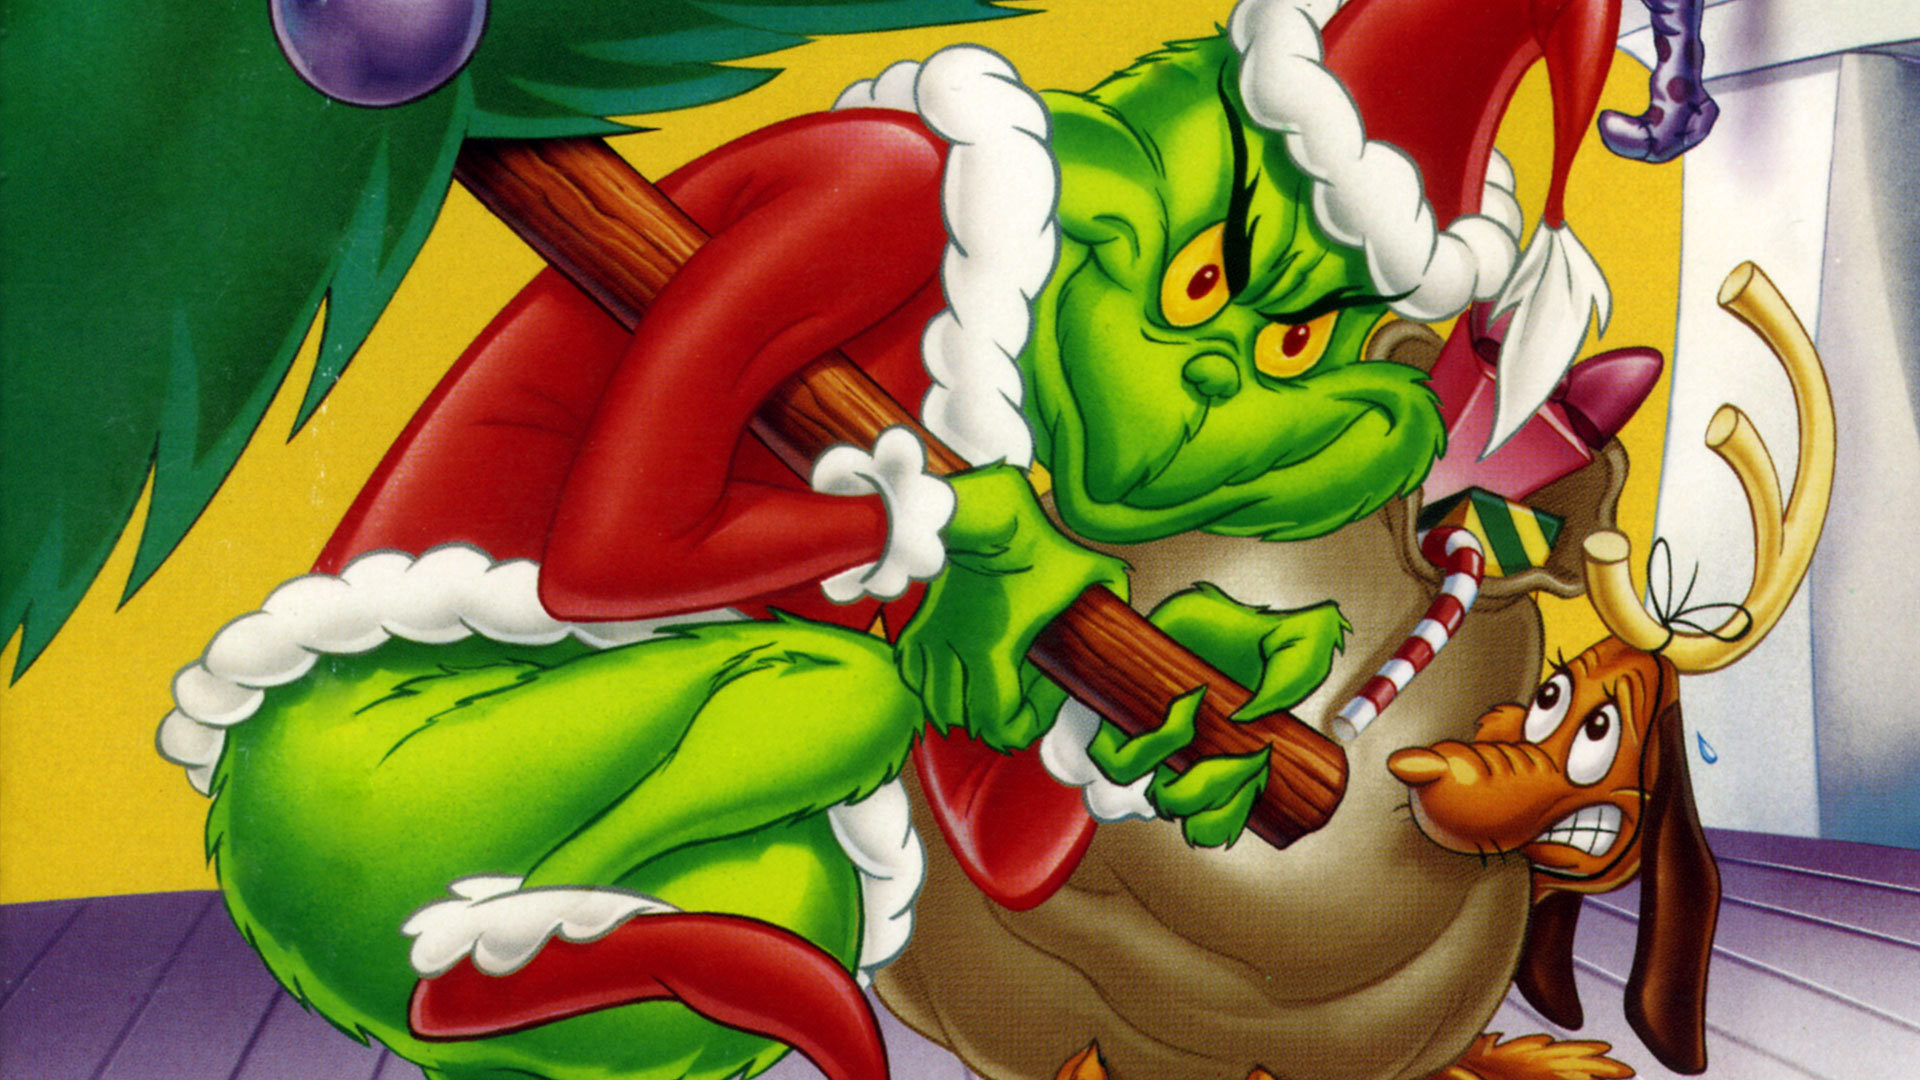 Desktop Christmas Background Grinch Stole Who